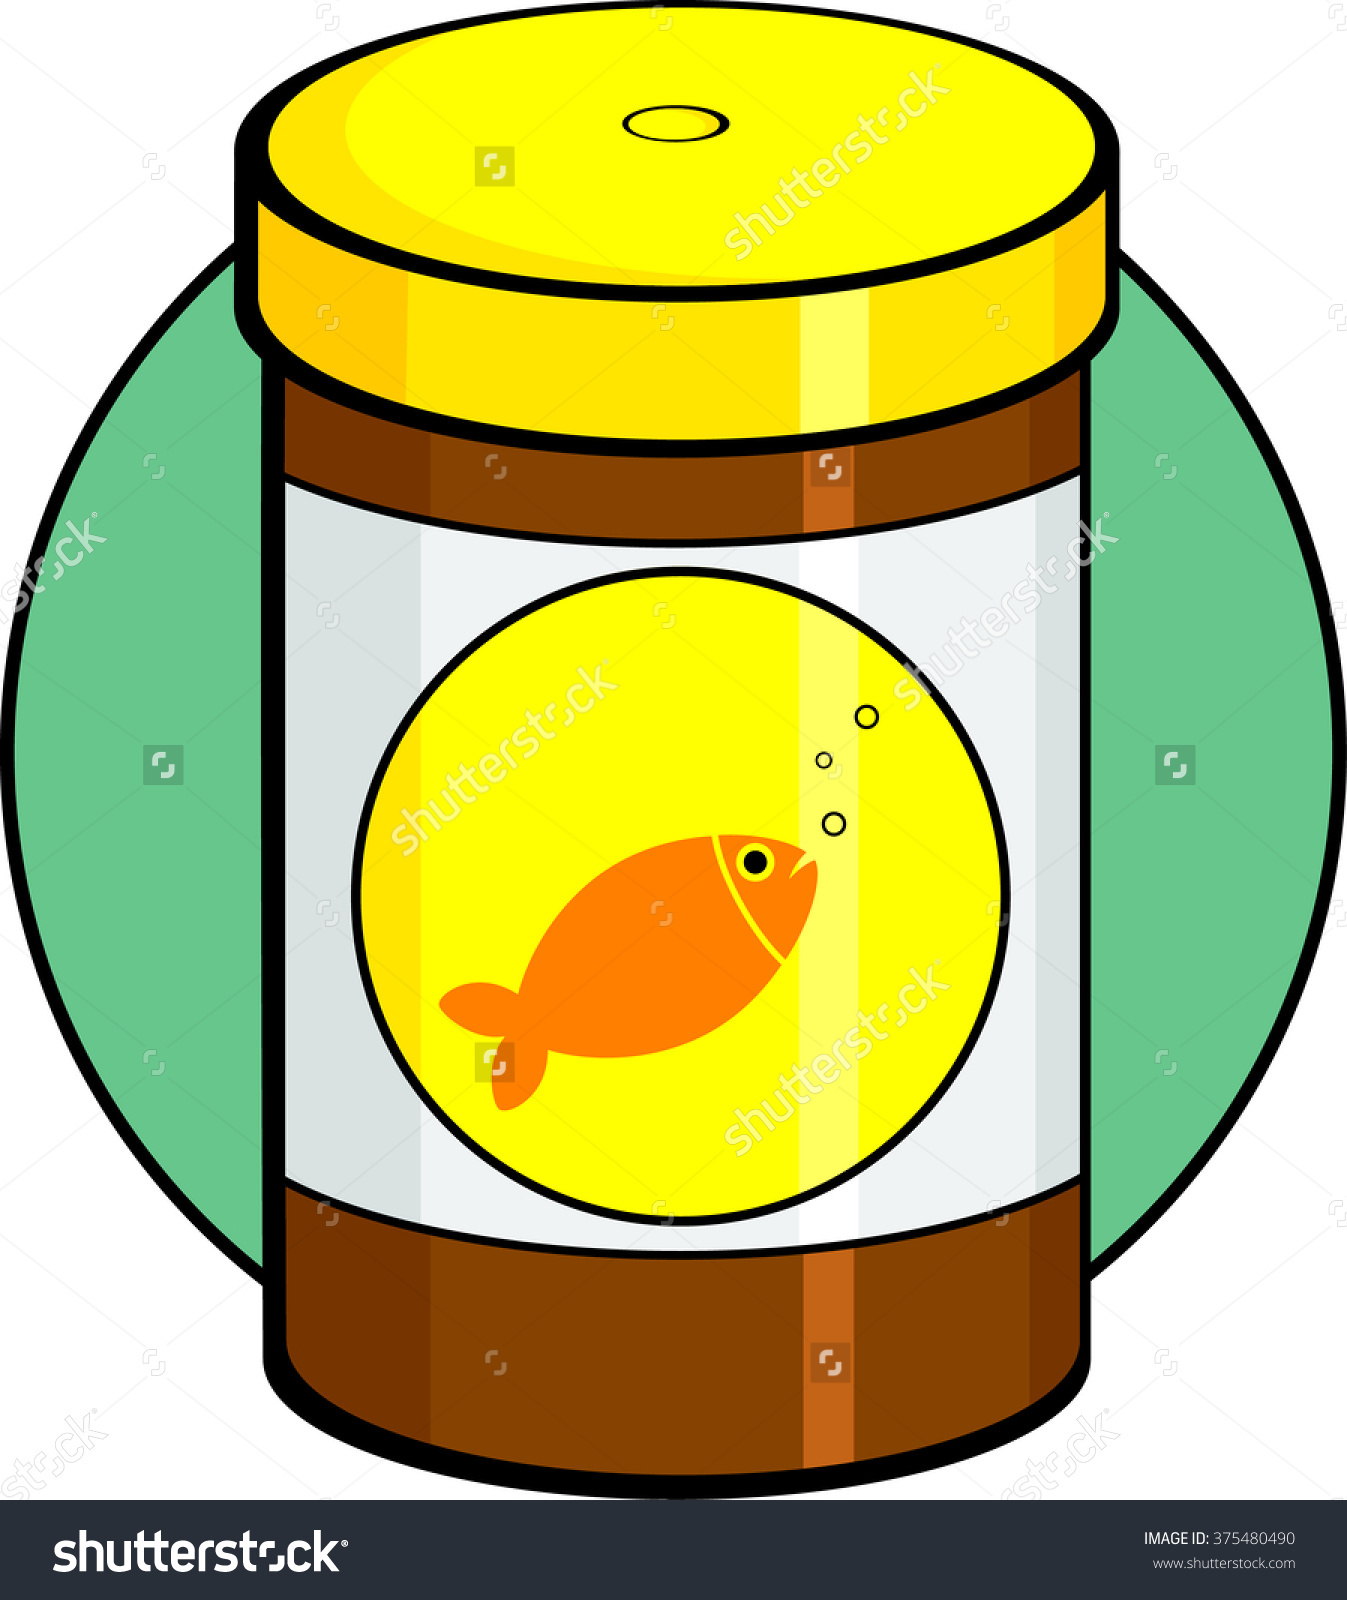 Fish food canister label clipart.